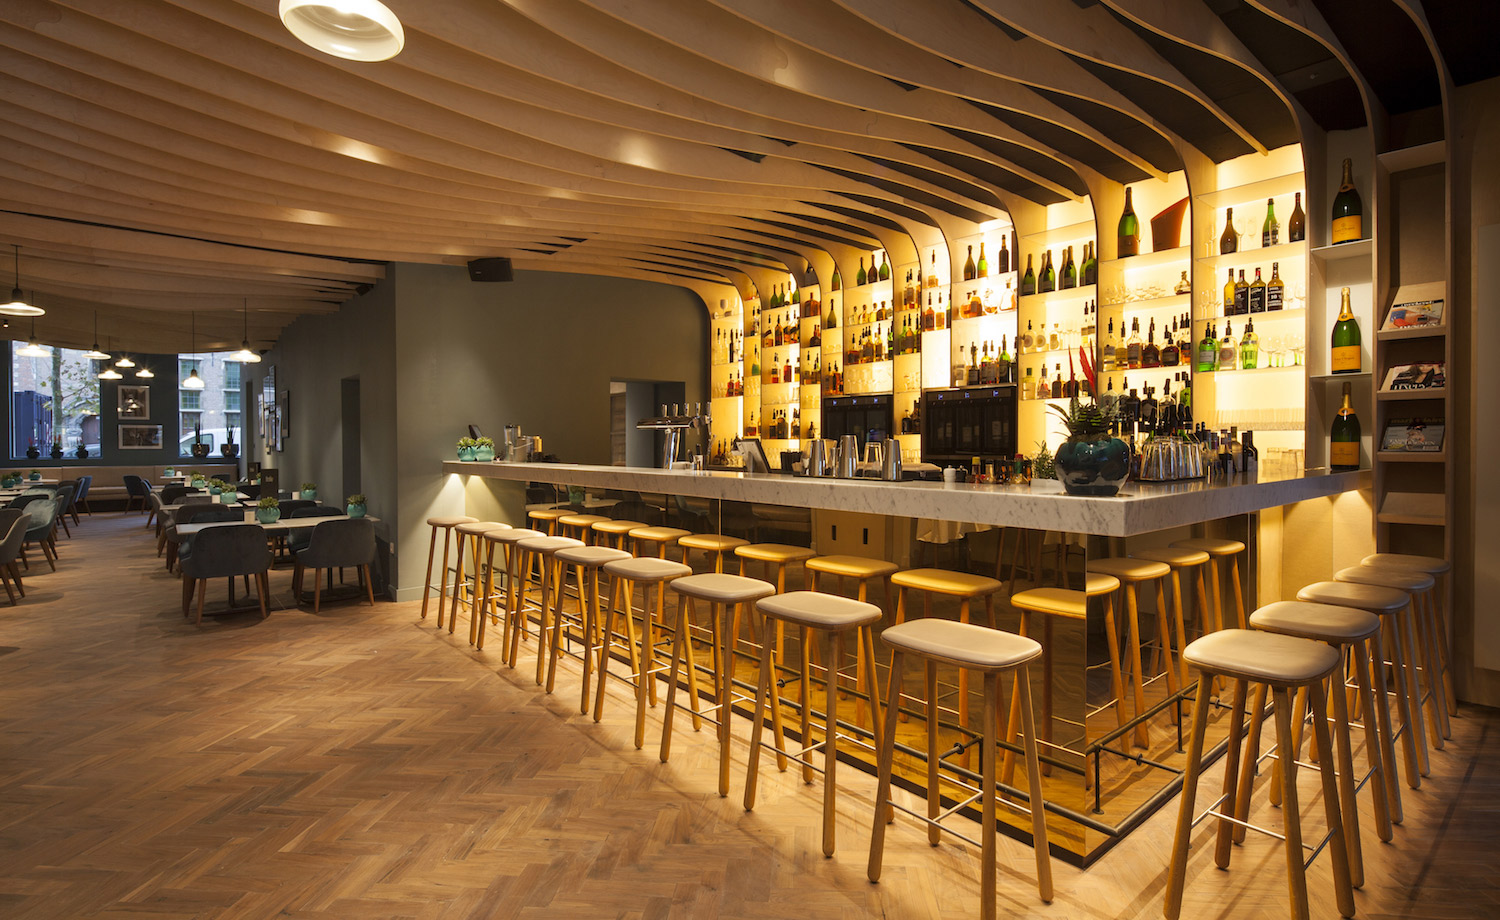 Bar Festiv bar review  Antwerp Belgium  Wallpaper